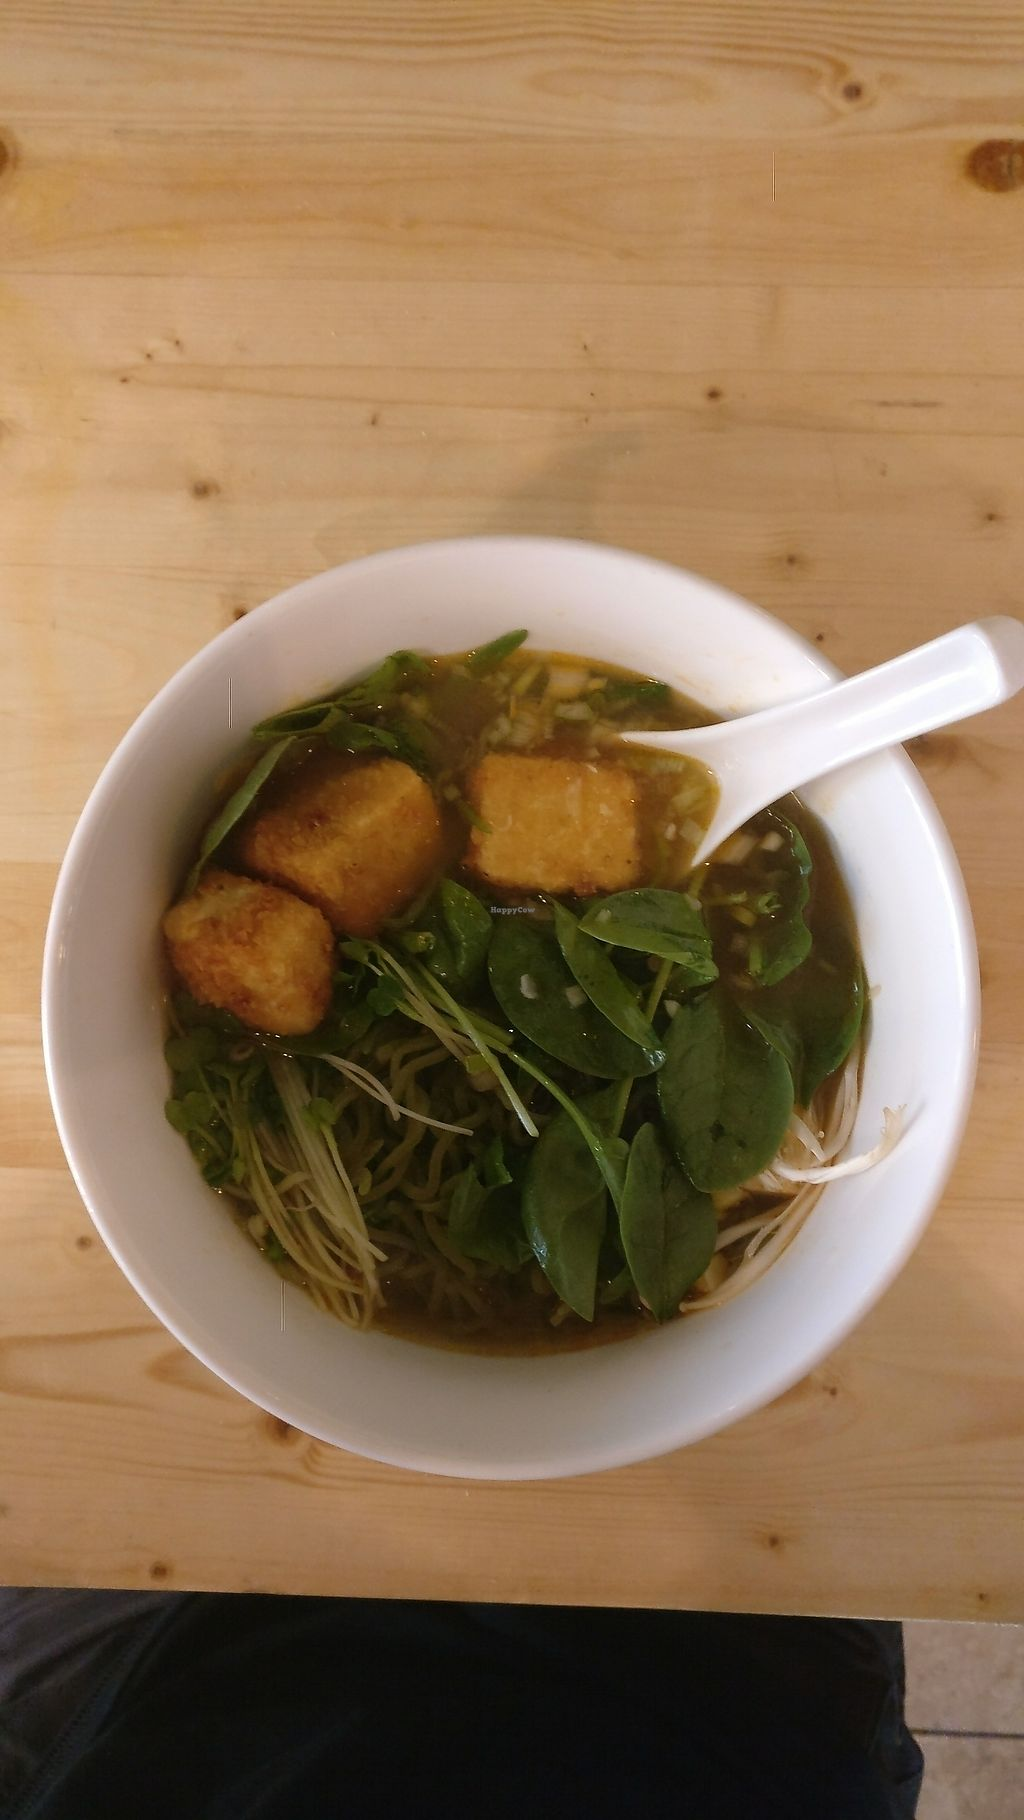 """Photo of Ramen Haus  by <a href=""""/members/profile/Nogd"""">Nogd</a> <br/>Vegan Ramen <br/> August 21, 2017  - <a href='/contact/abuse/image/99156/295287'>Report</a>"""